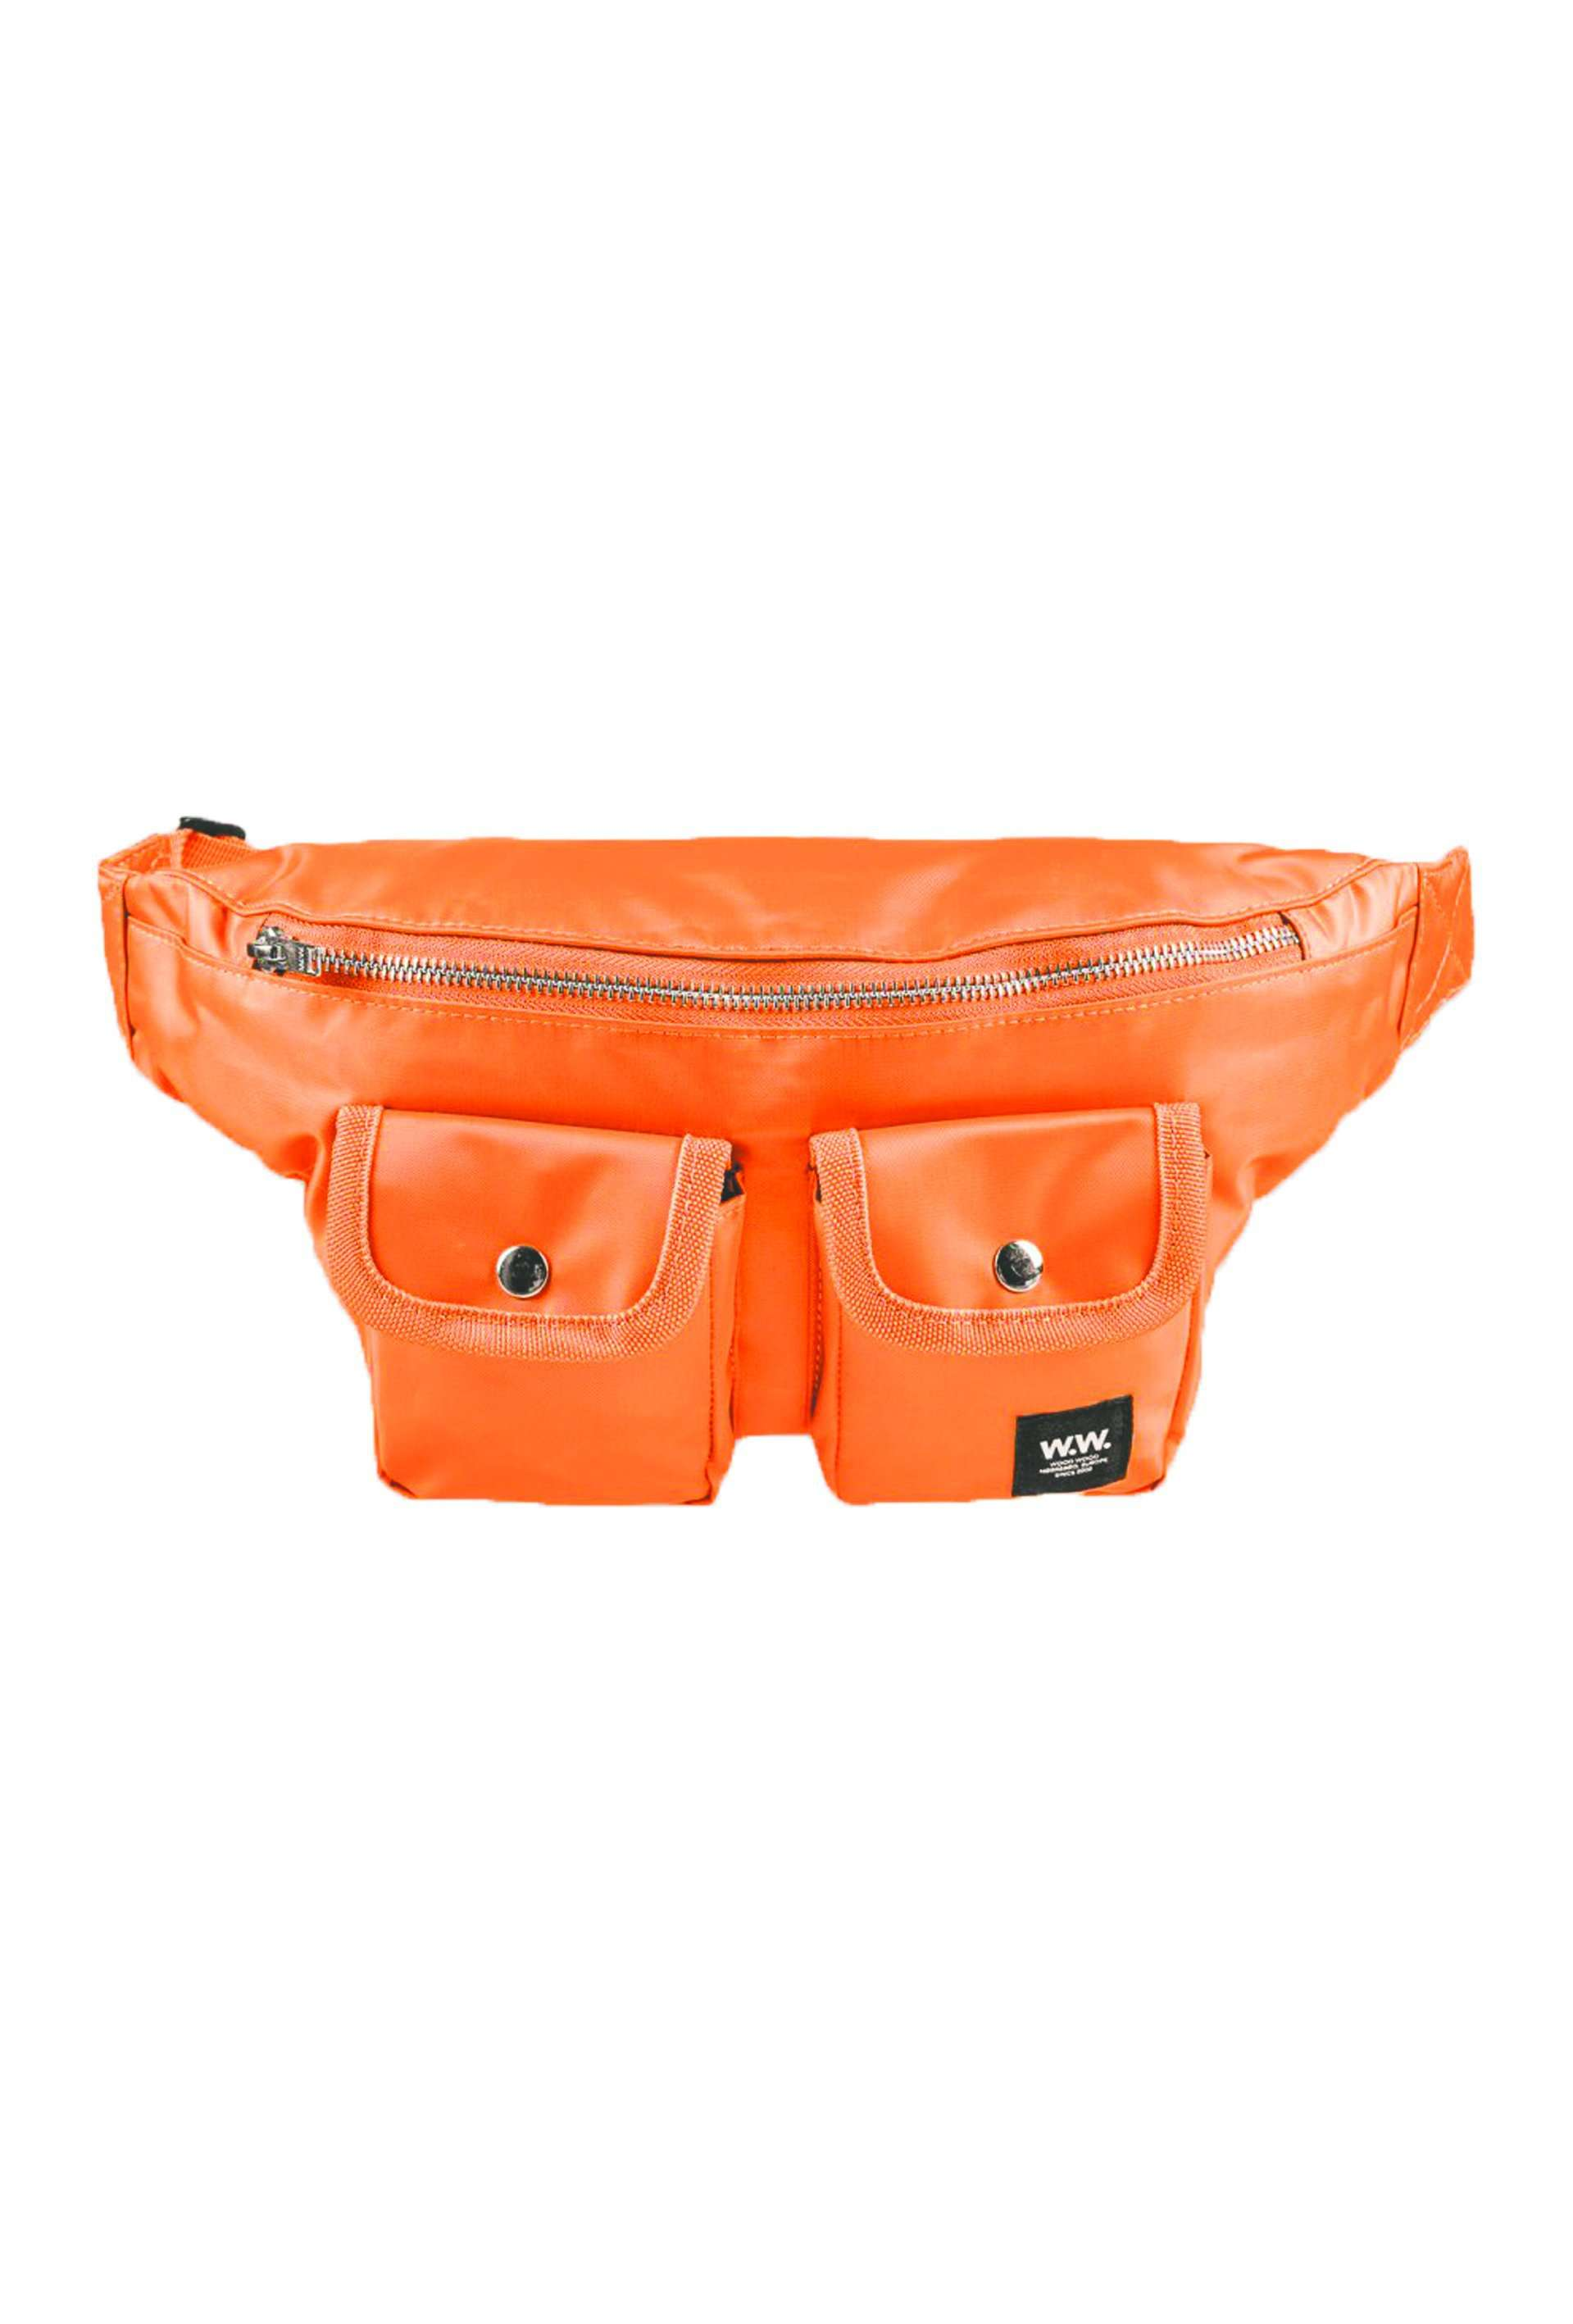 Gray Bumbag - Rust - Wood Wood - Orange One Size